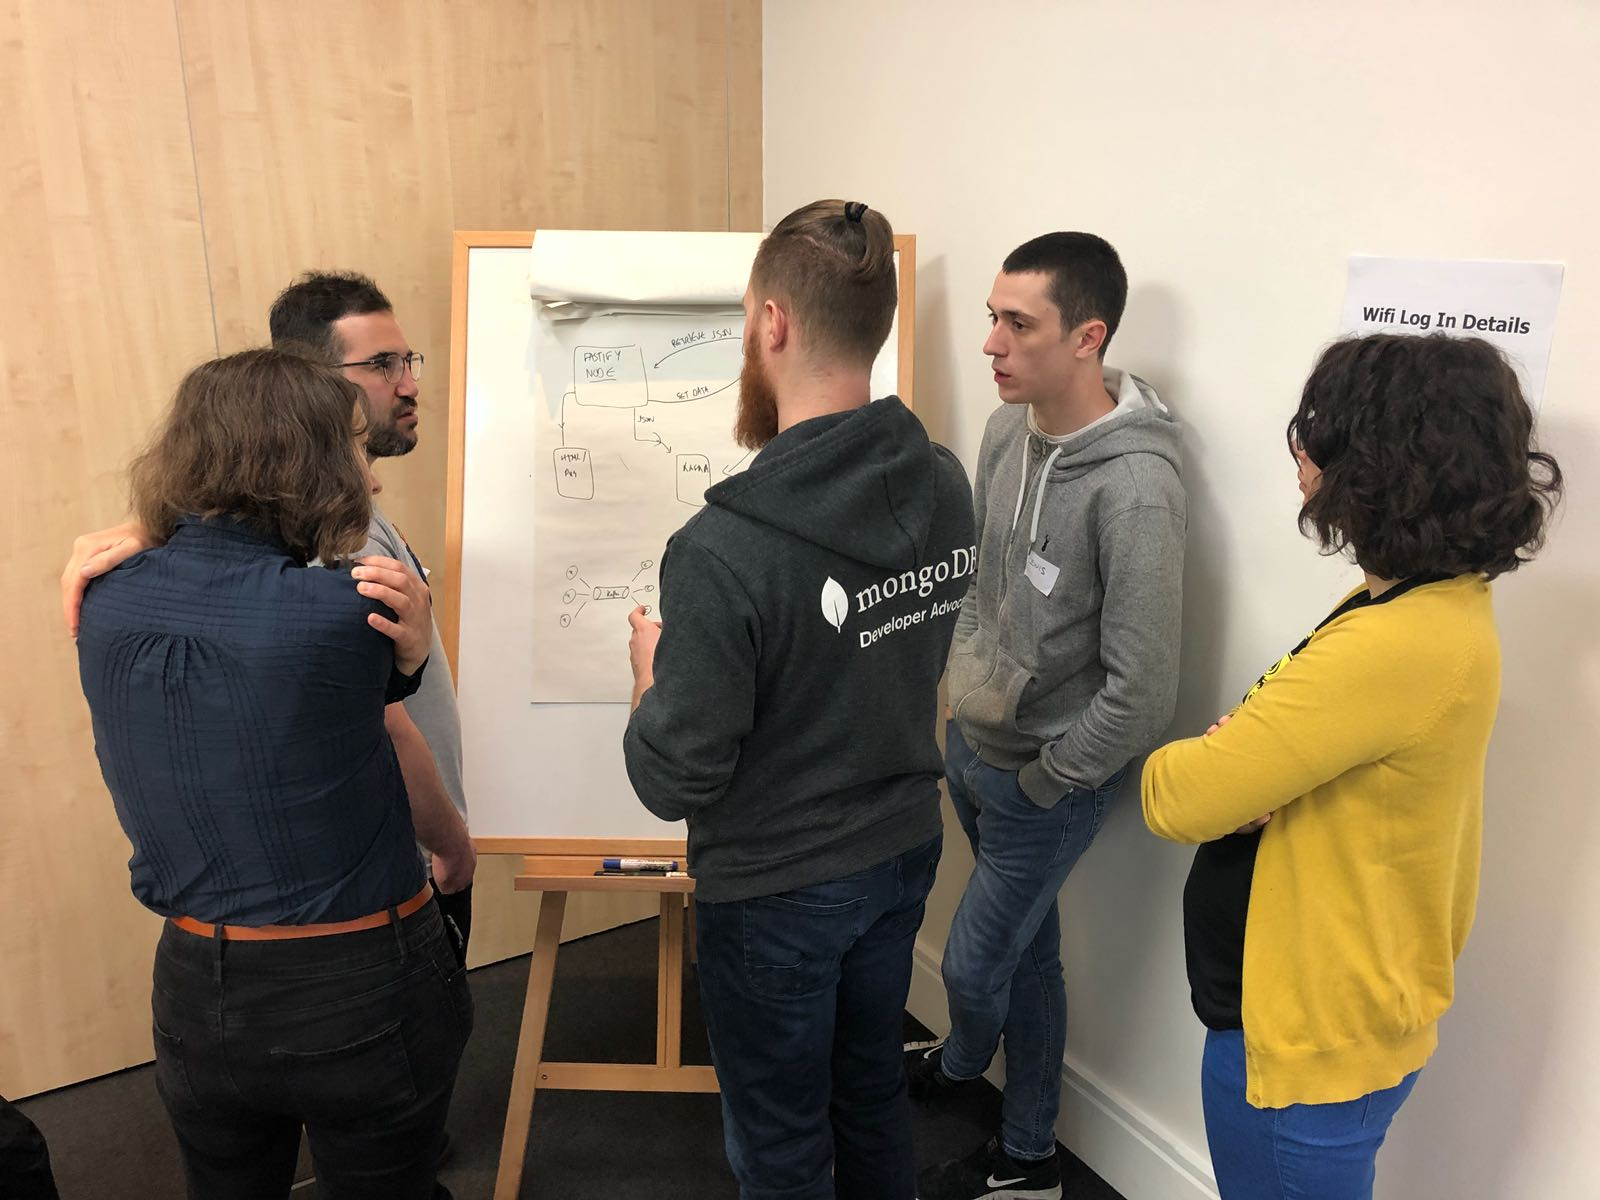 developers around a whiteboard at full stack hack